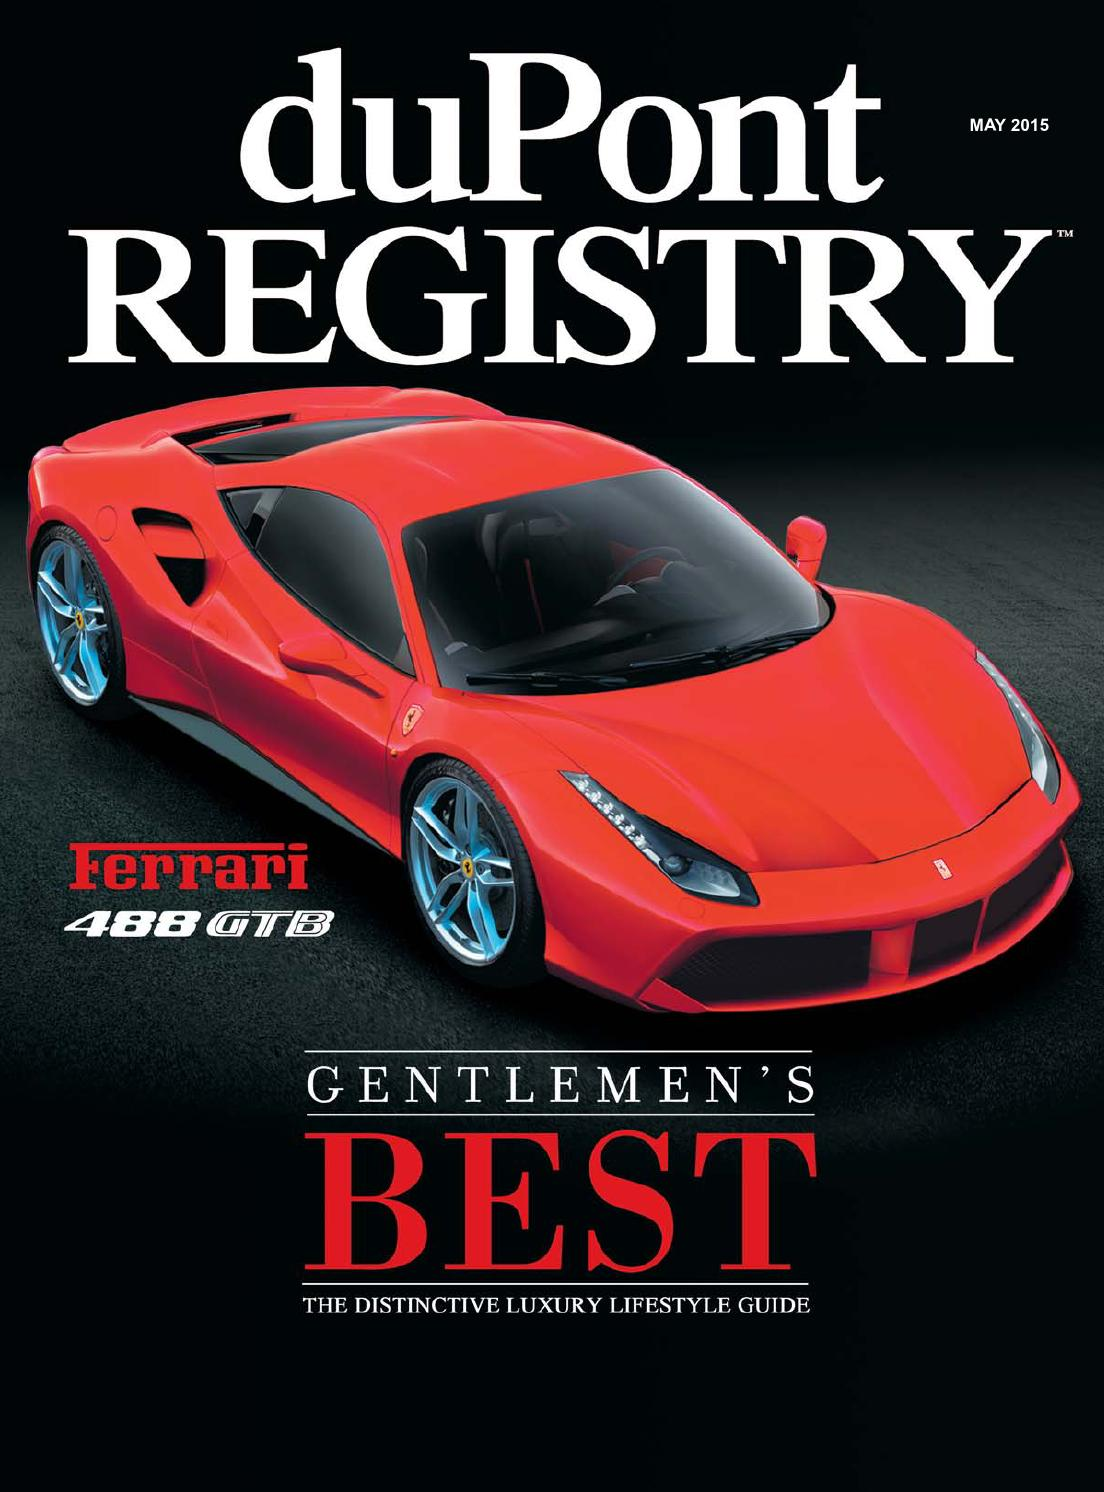 DuPontREGISTRY Autos May 2015 By DuPont REGISTRY   Issuu